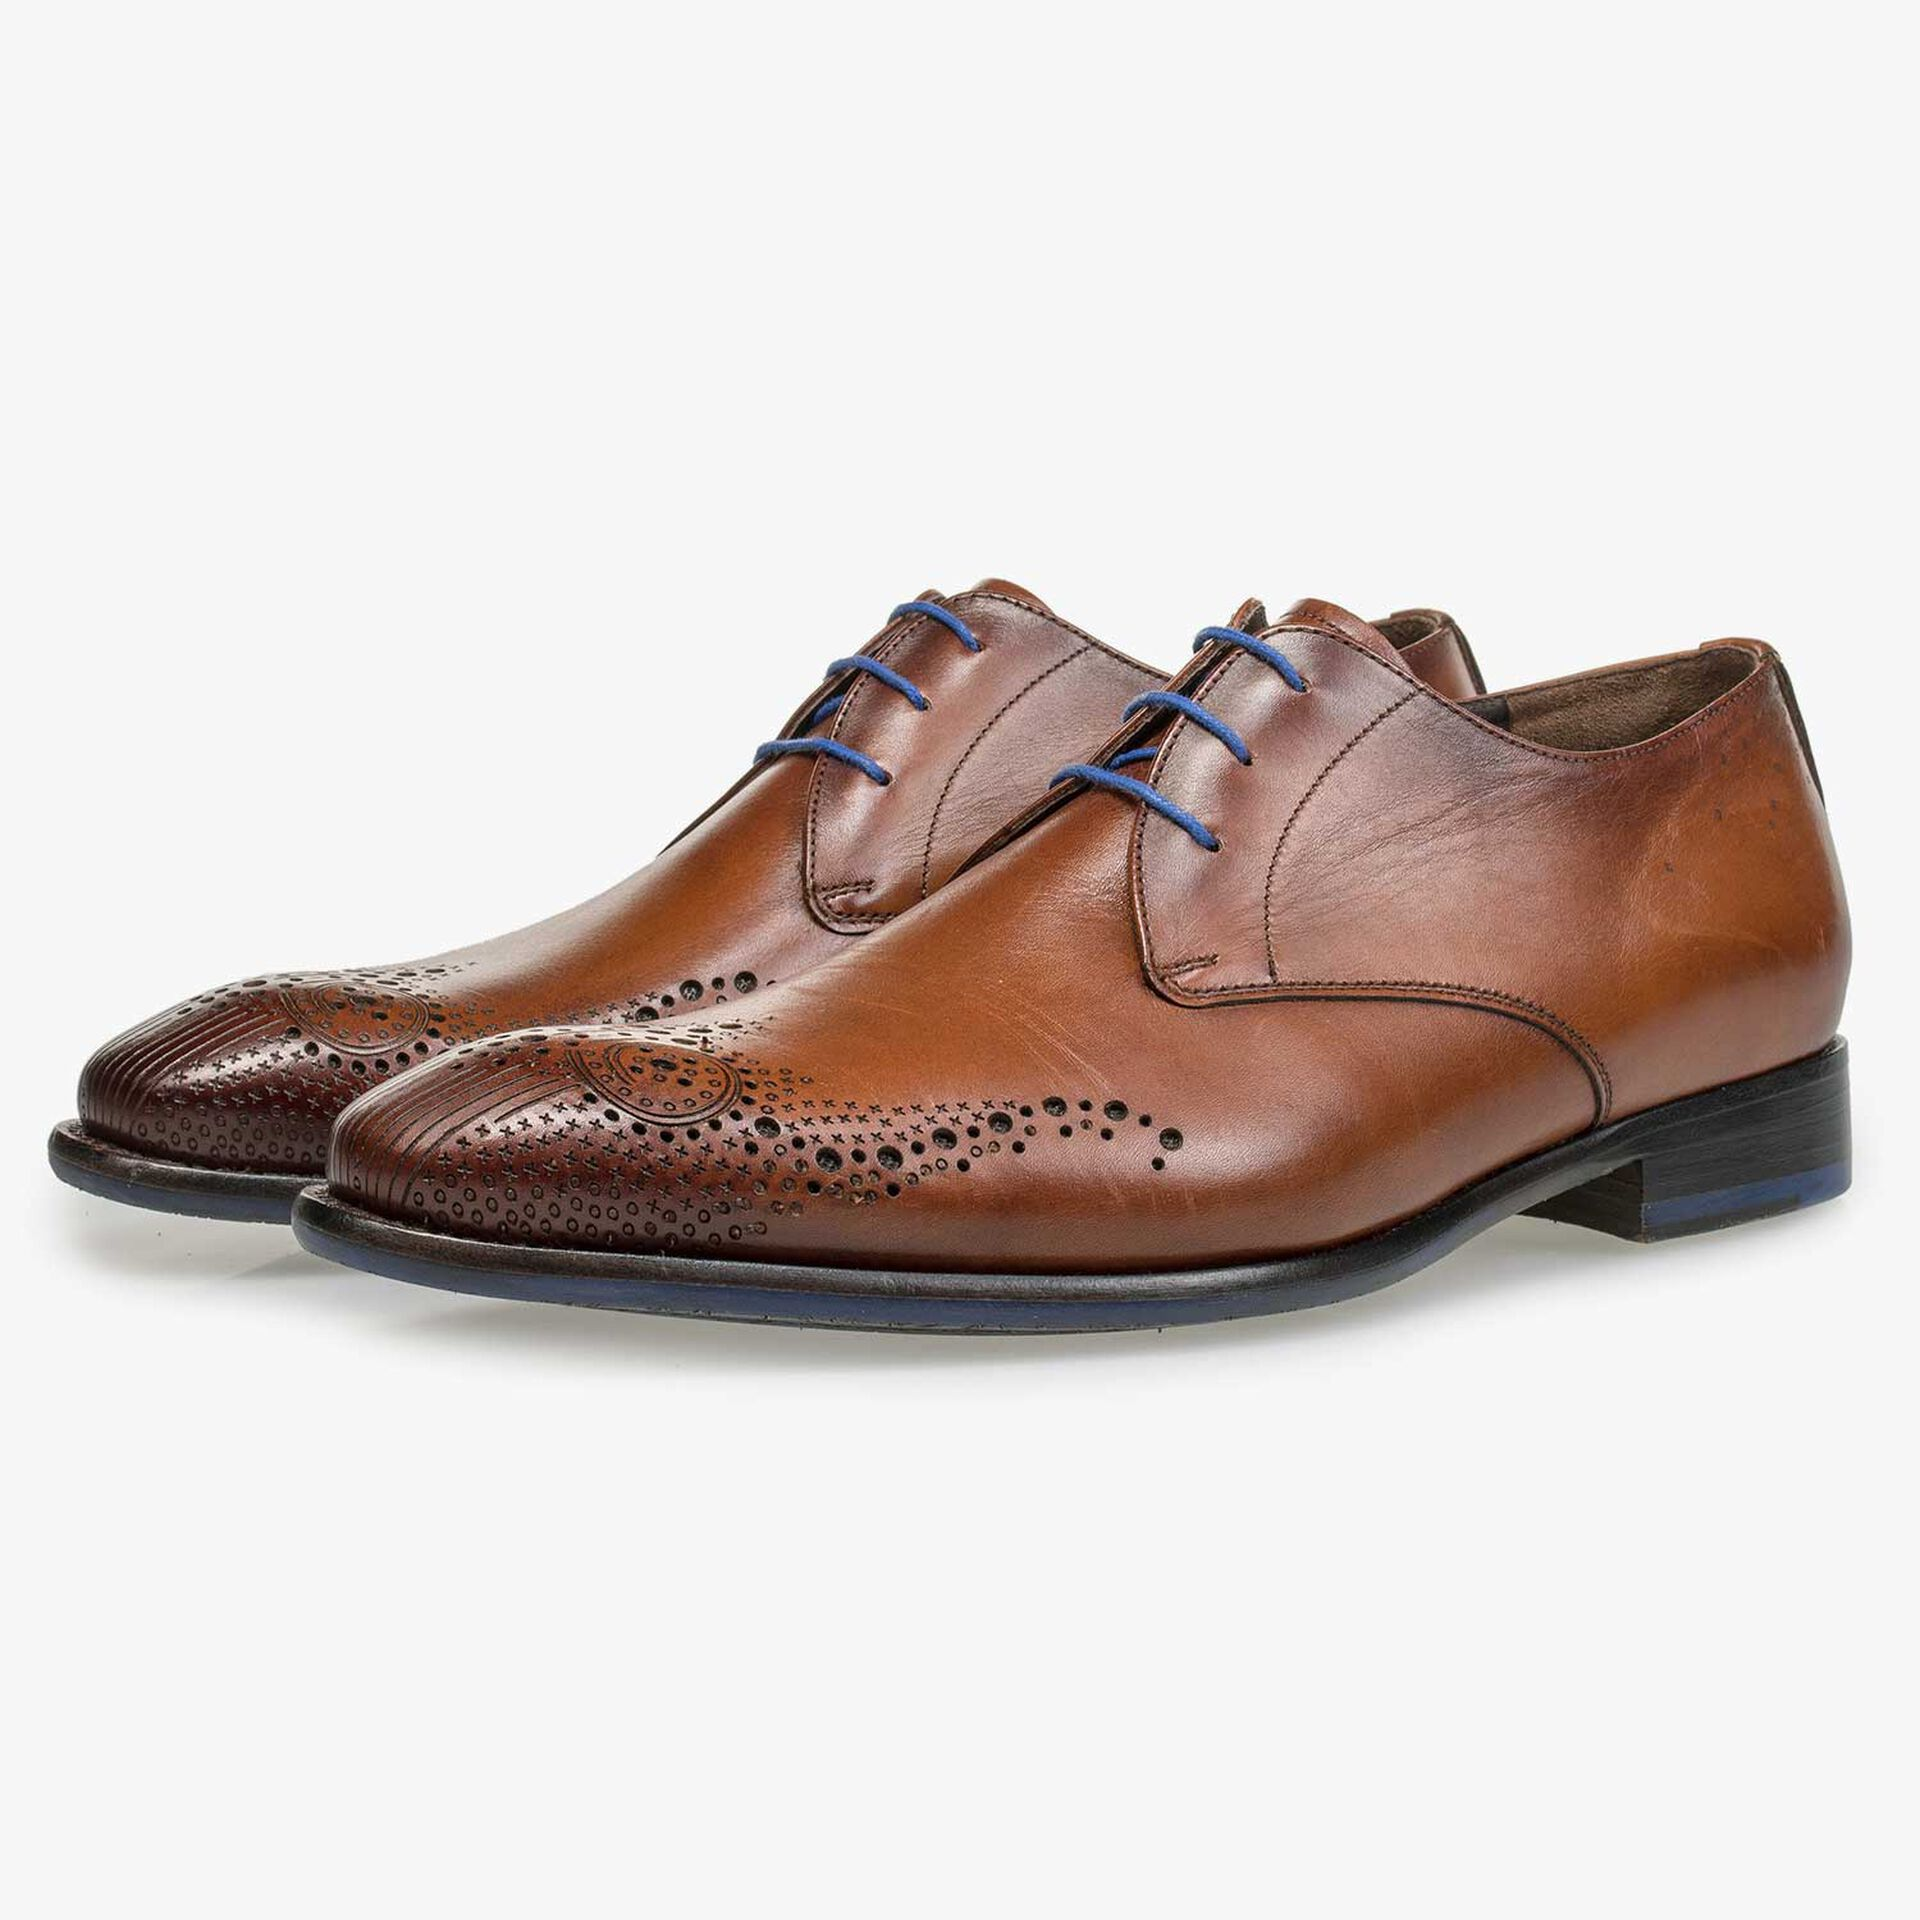 Cognac-coloured lace shoe with brogue details